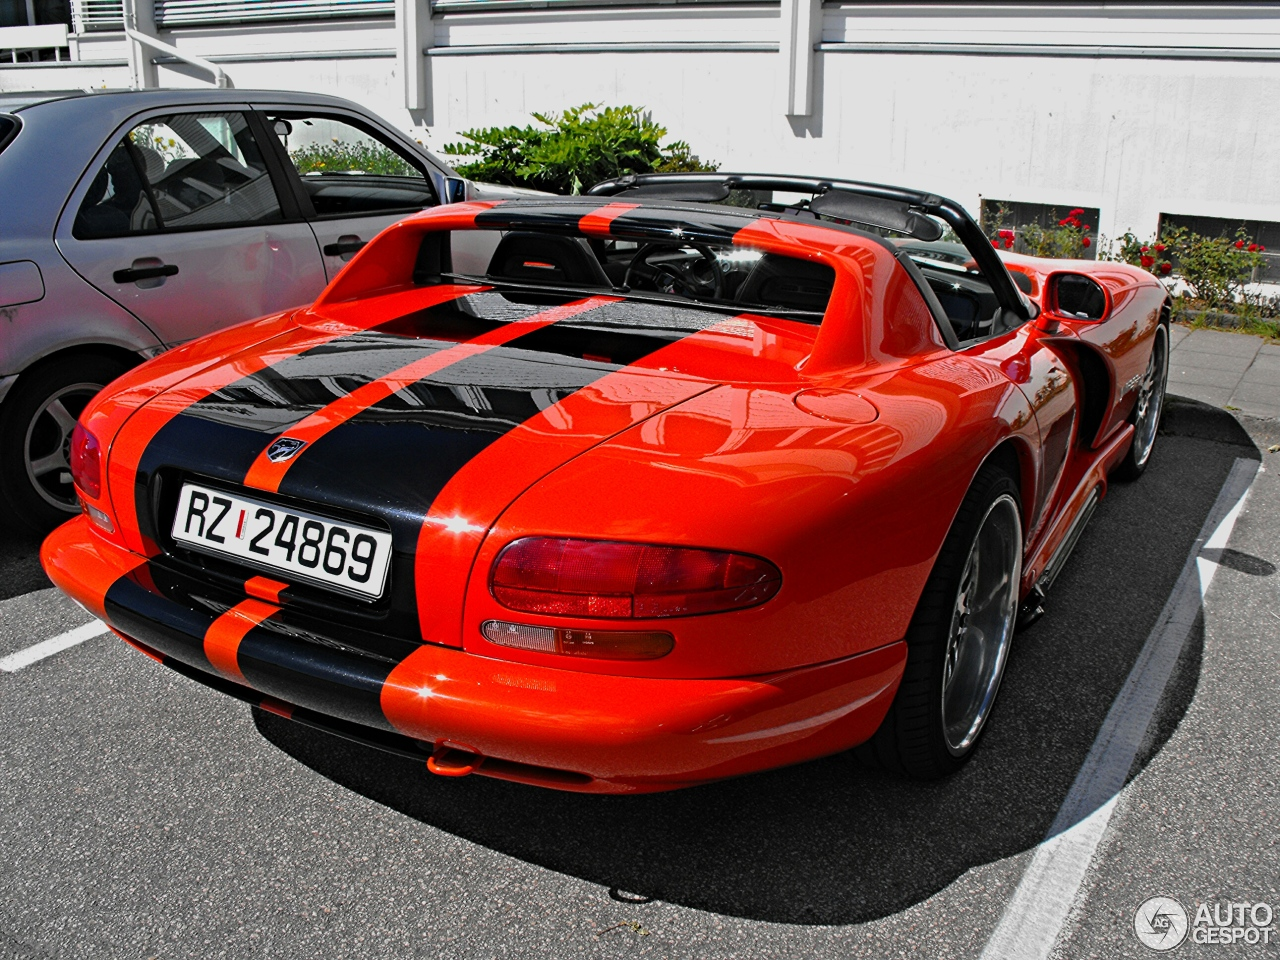 dodge viper rt 10 1992 4 september 2016 autogespot. Black Bedroom Furniture Sets. Home Design Ideas